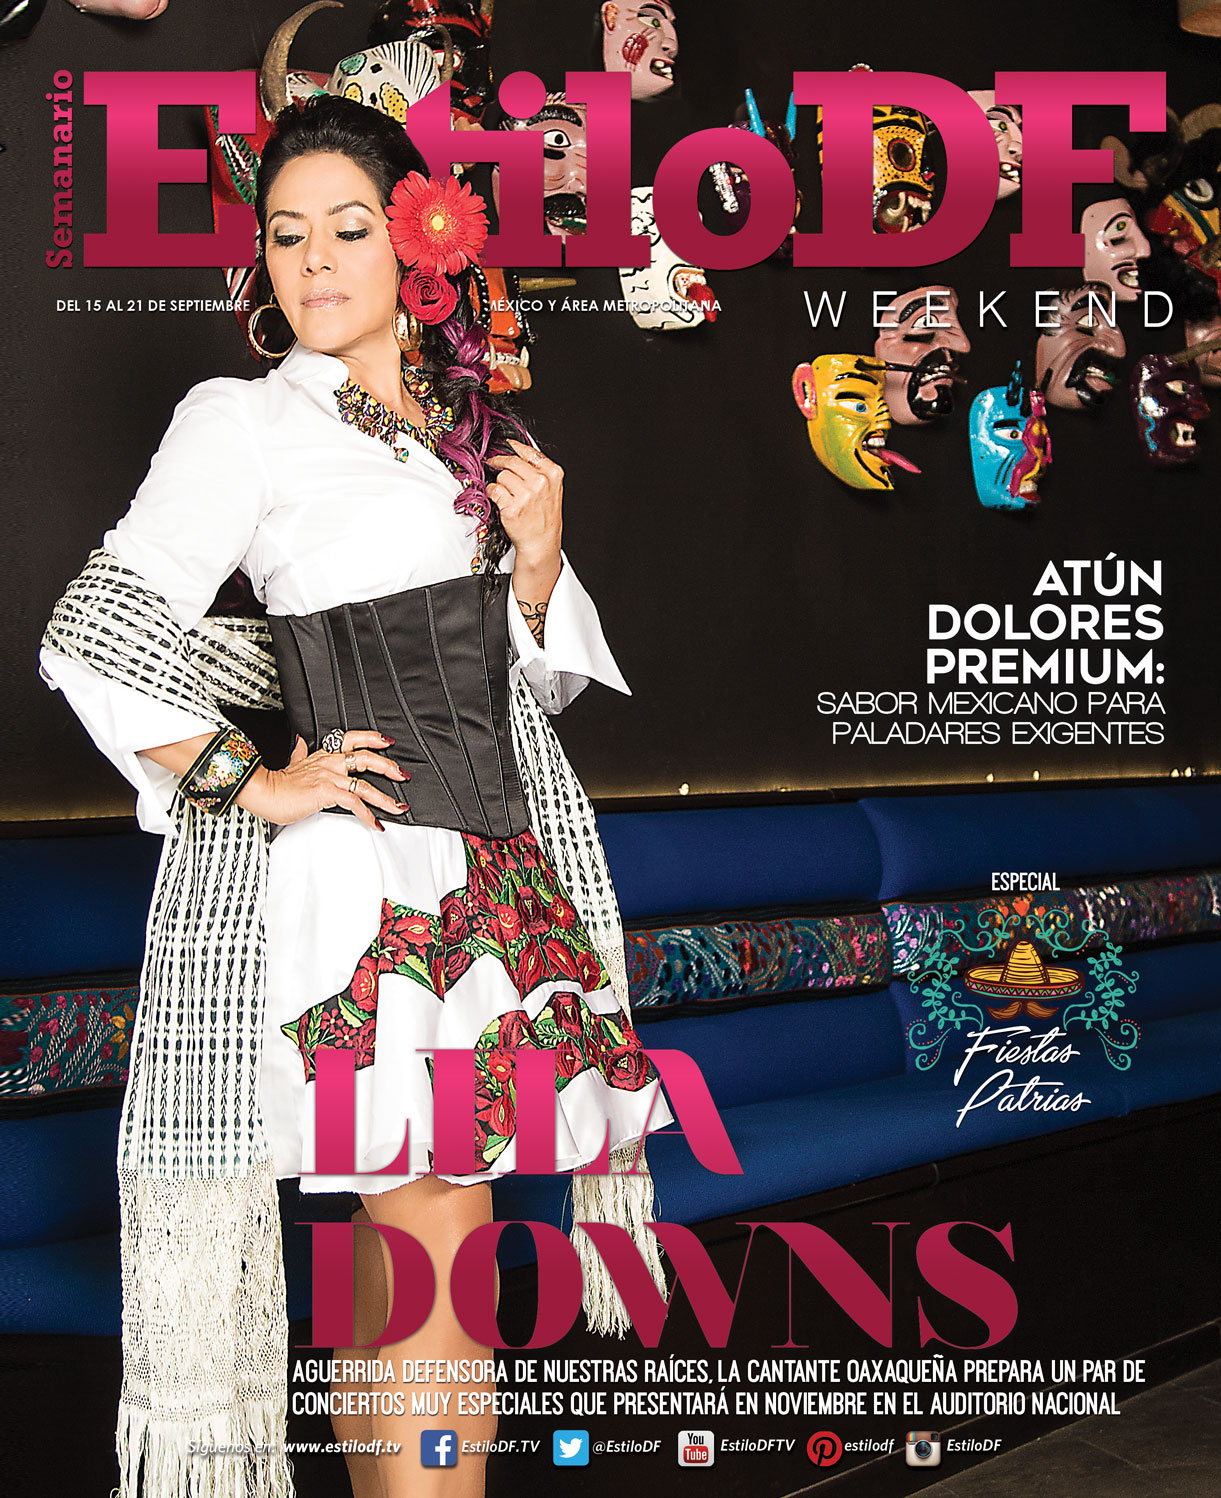 Lila-Downs-Portada-Web